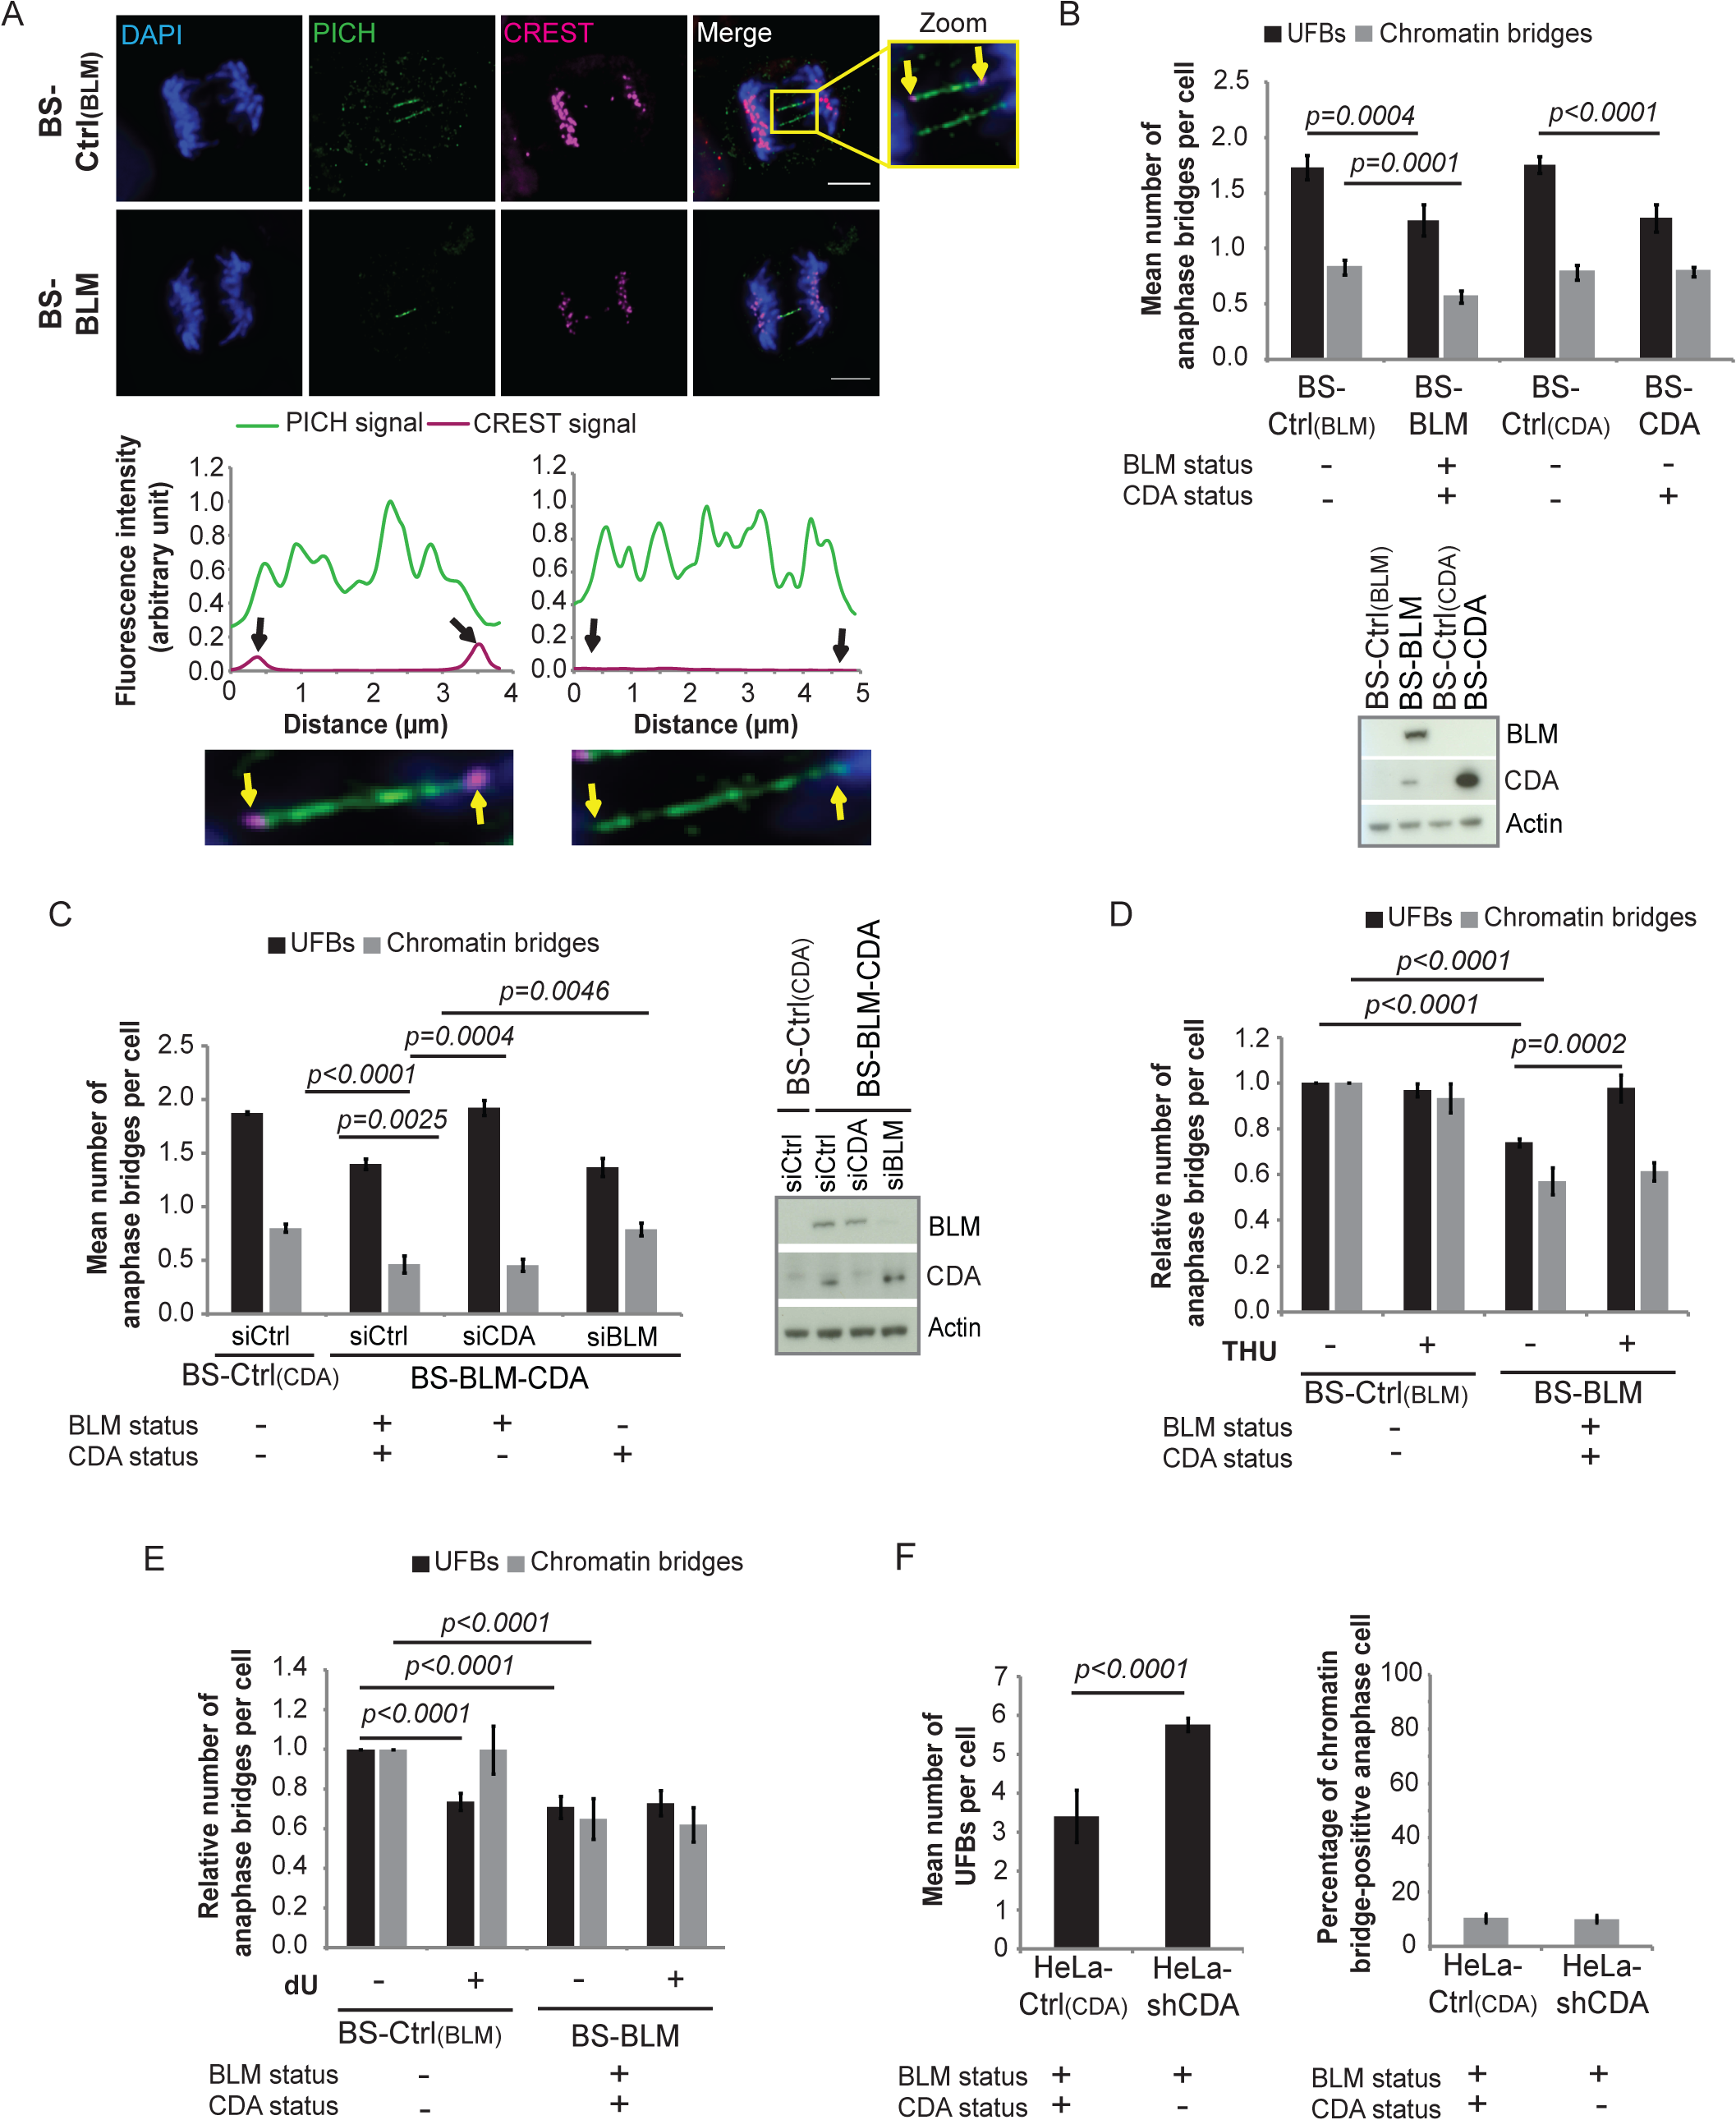 CDA prevents supernumerary UFB formation in BS cells and in cells expressing BLM.